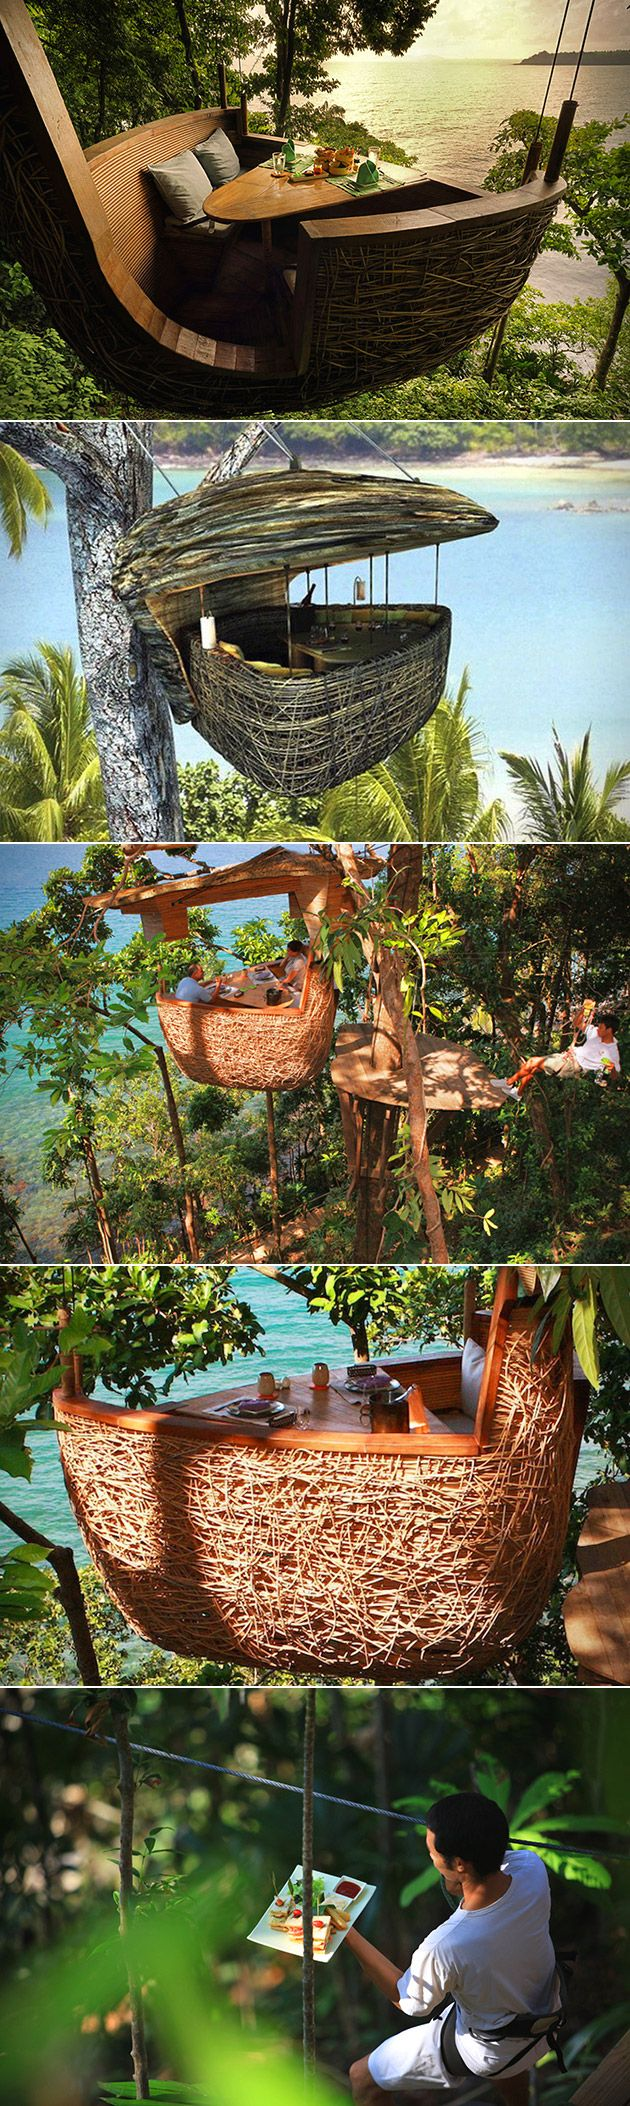 Now live your childhood Jungle Book dreams at the Soneva Kiri resort in Thailand, where their Treepod Dining experience promises an astounding meal.   Located on the remote Thai island of Kood, the resort features 42 resort villa and 21 private residences spanning 150 acres of beach and tropical rainforest.